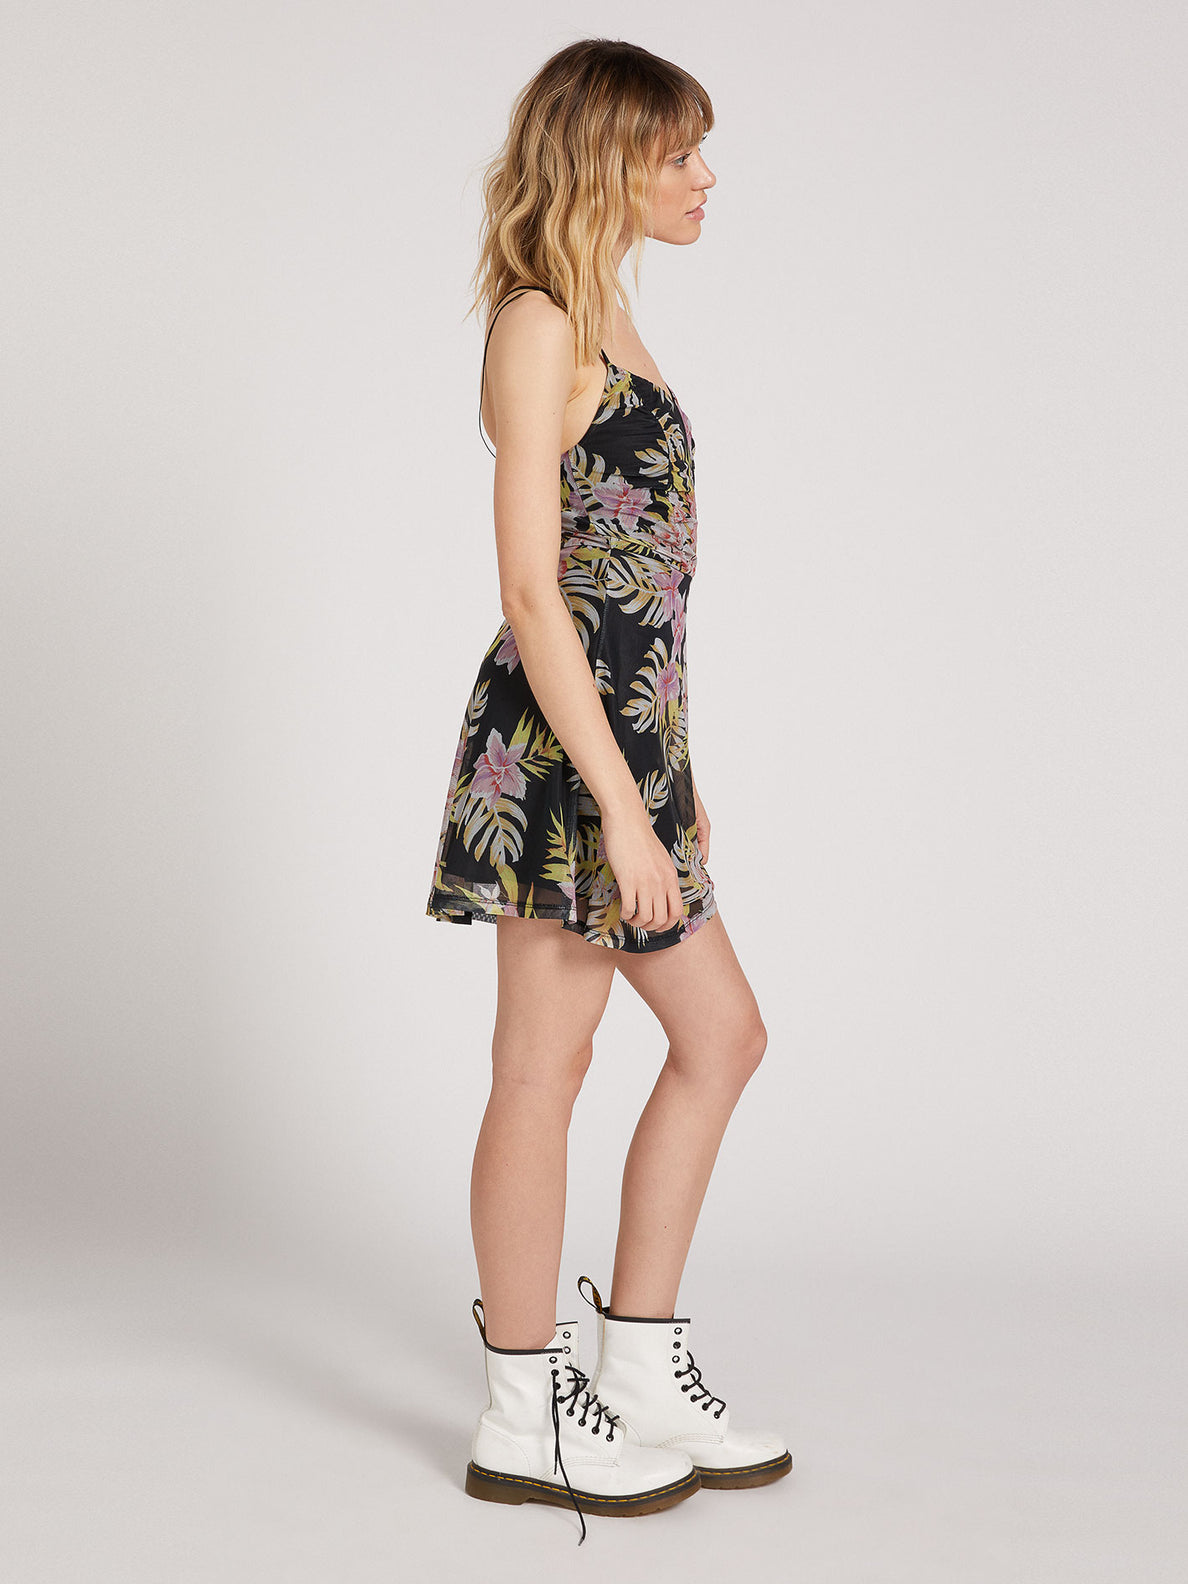 Slushy Hour Dress - Black Floral Print (B1311910_BFP) [1]